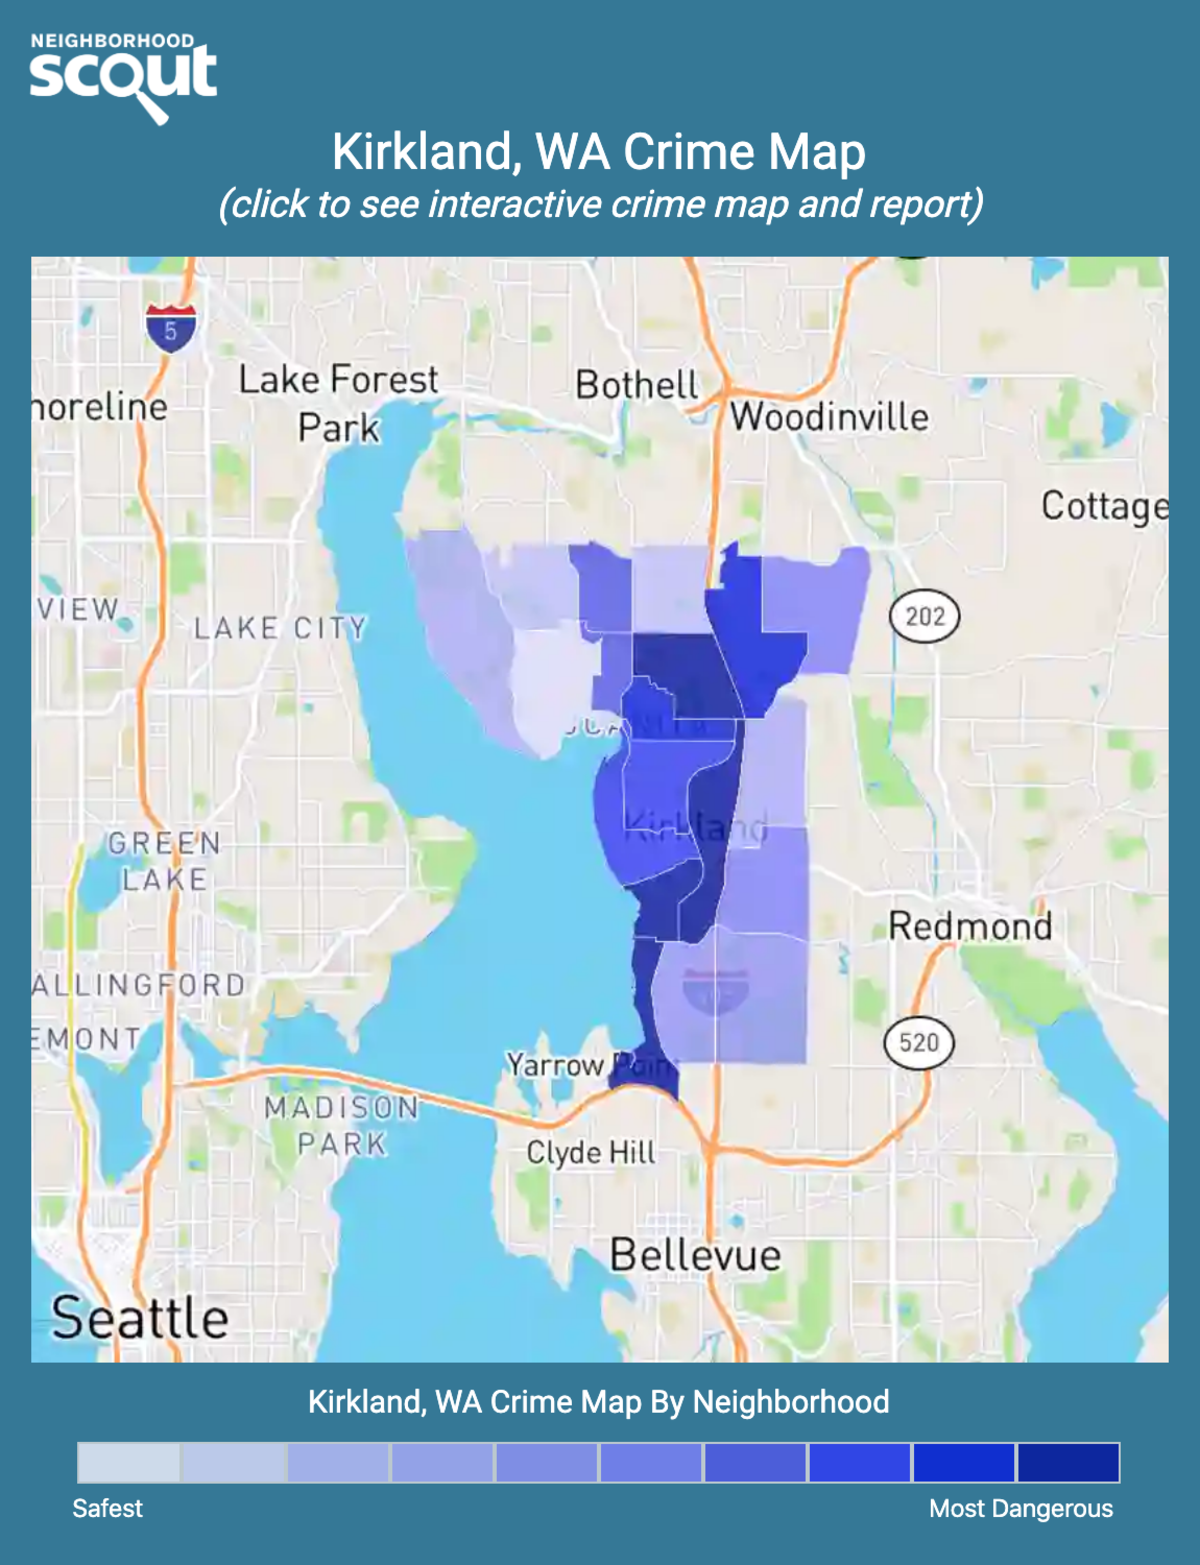 Kirkland, Washington crime map